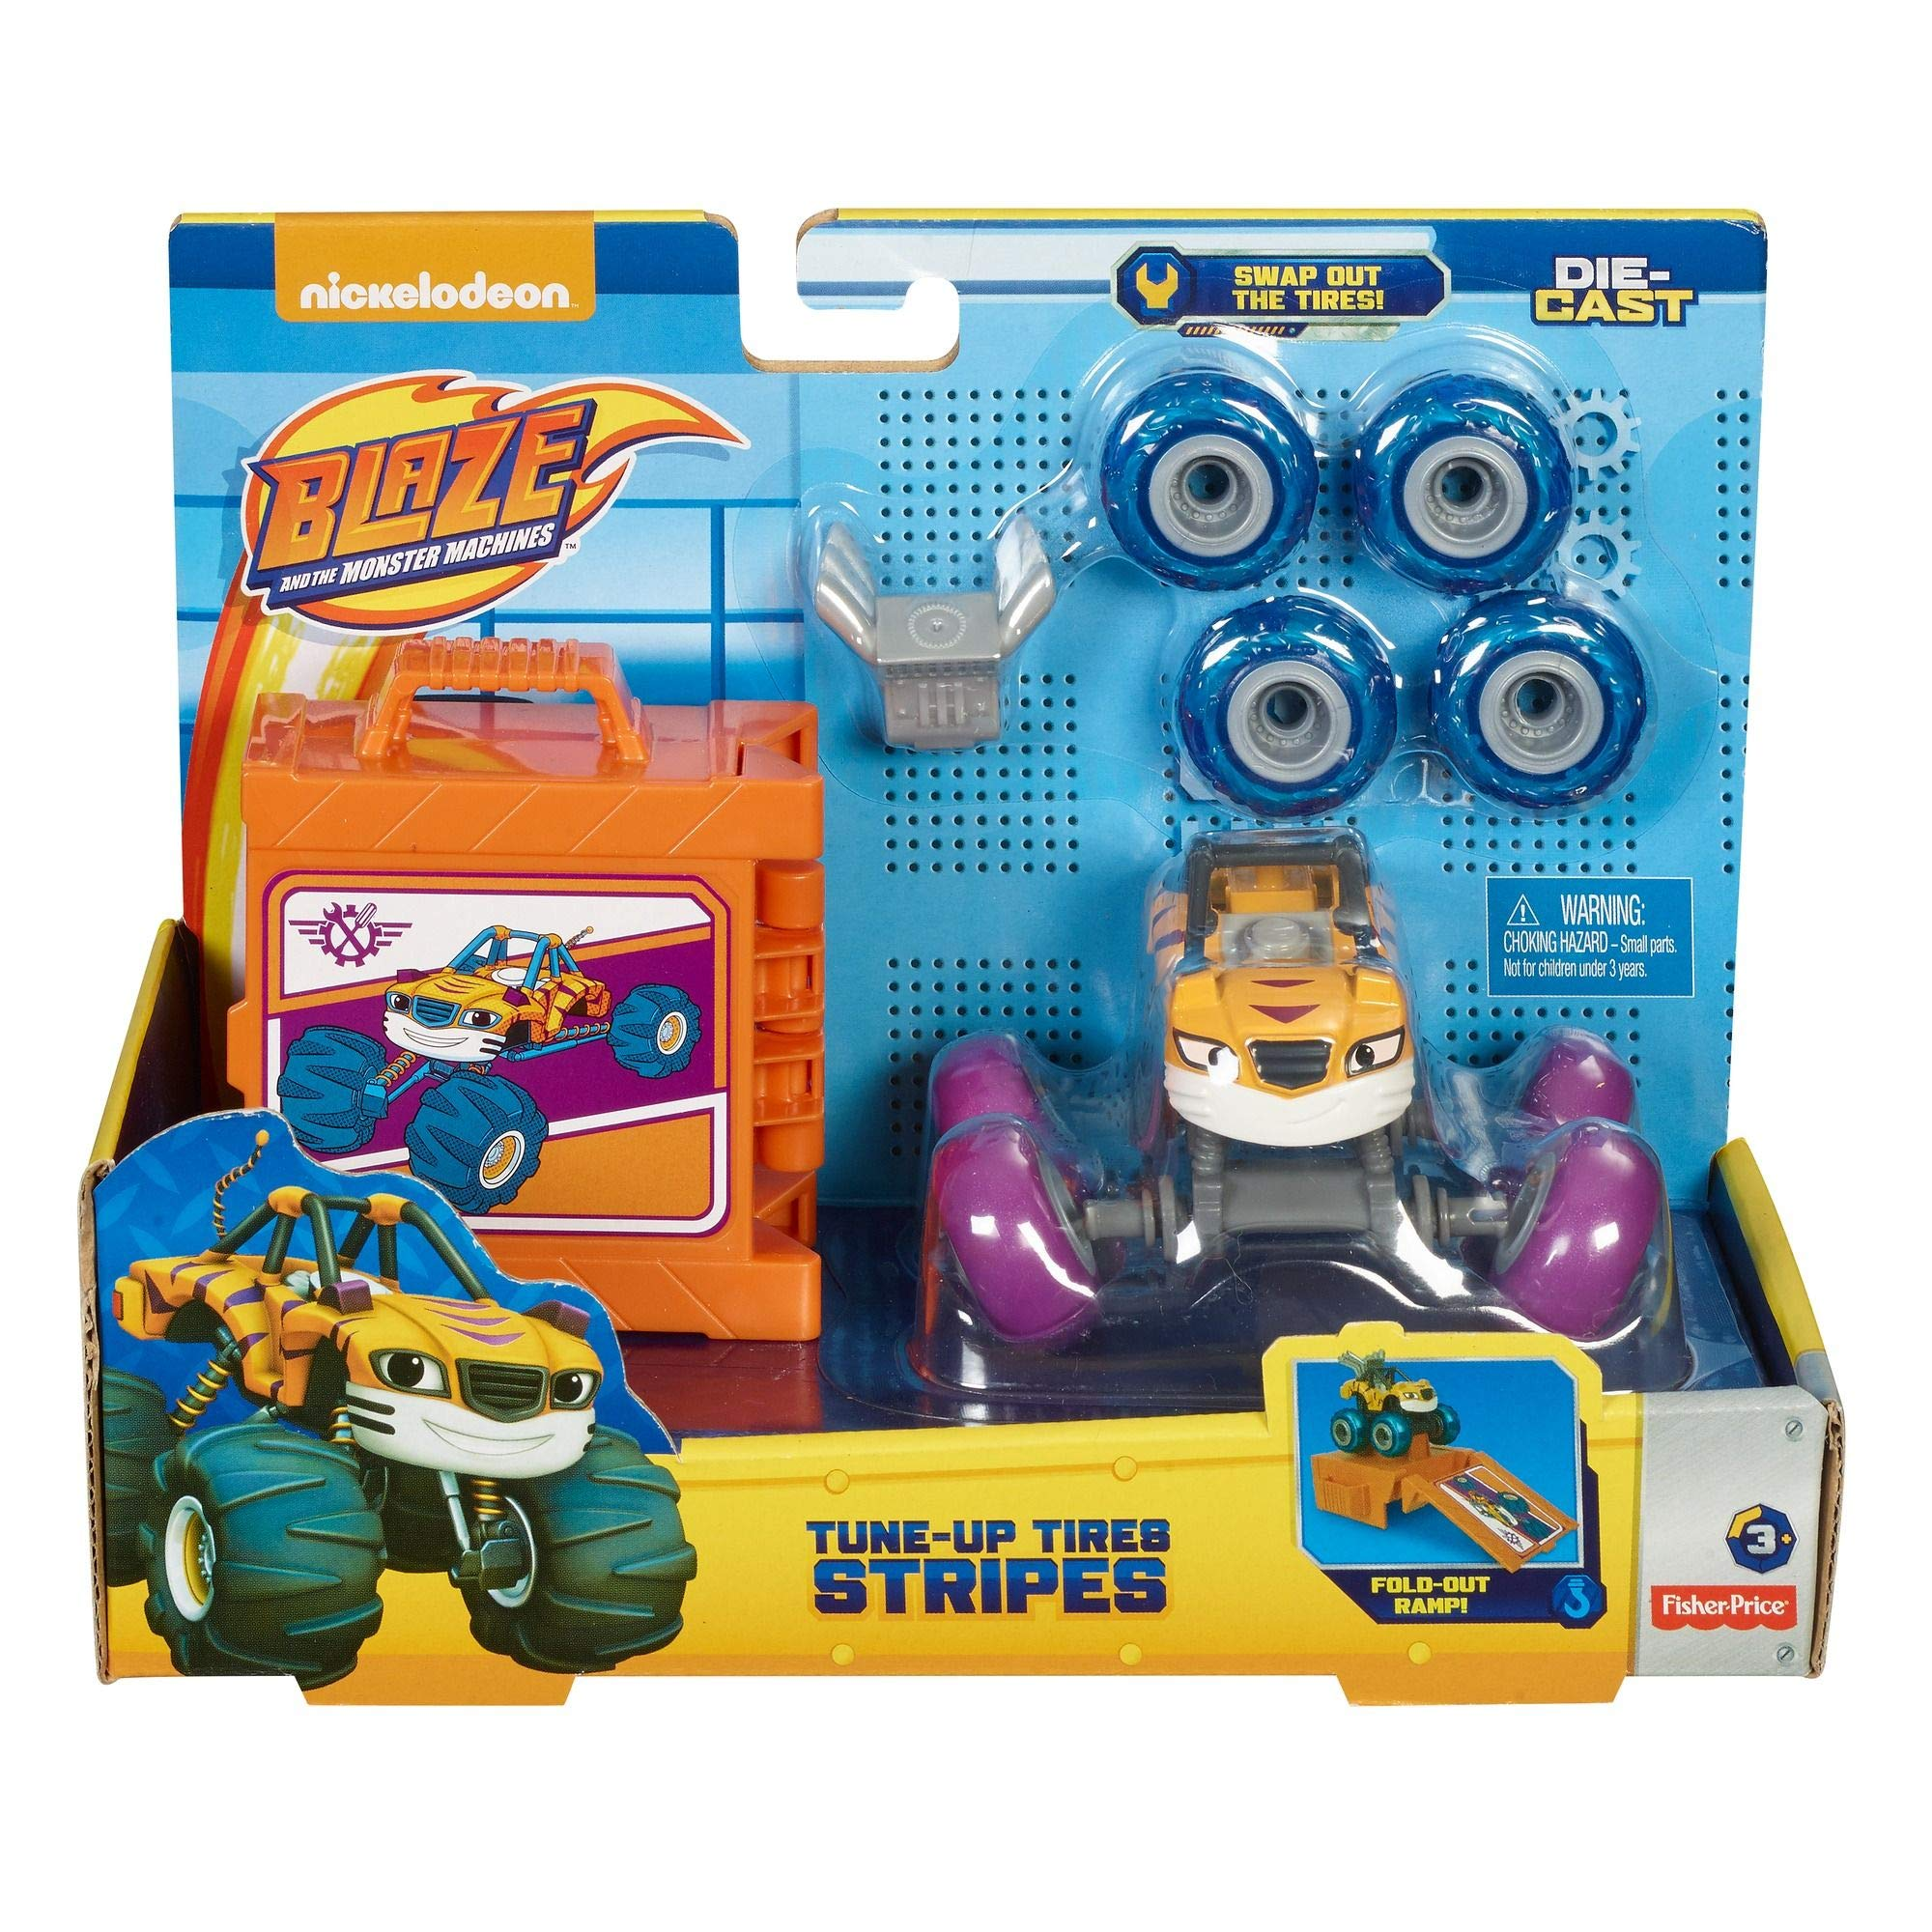 Fisher-Price Nickelodeon Blaze & the Monster Machines Tune-Up Tires, Stripes by Fisher-Price (Image #7)